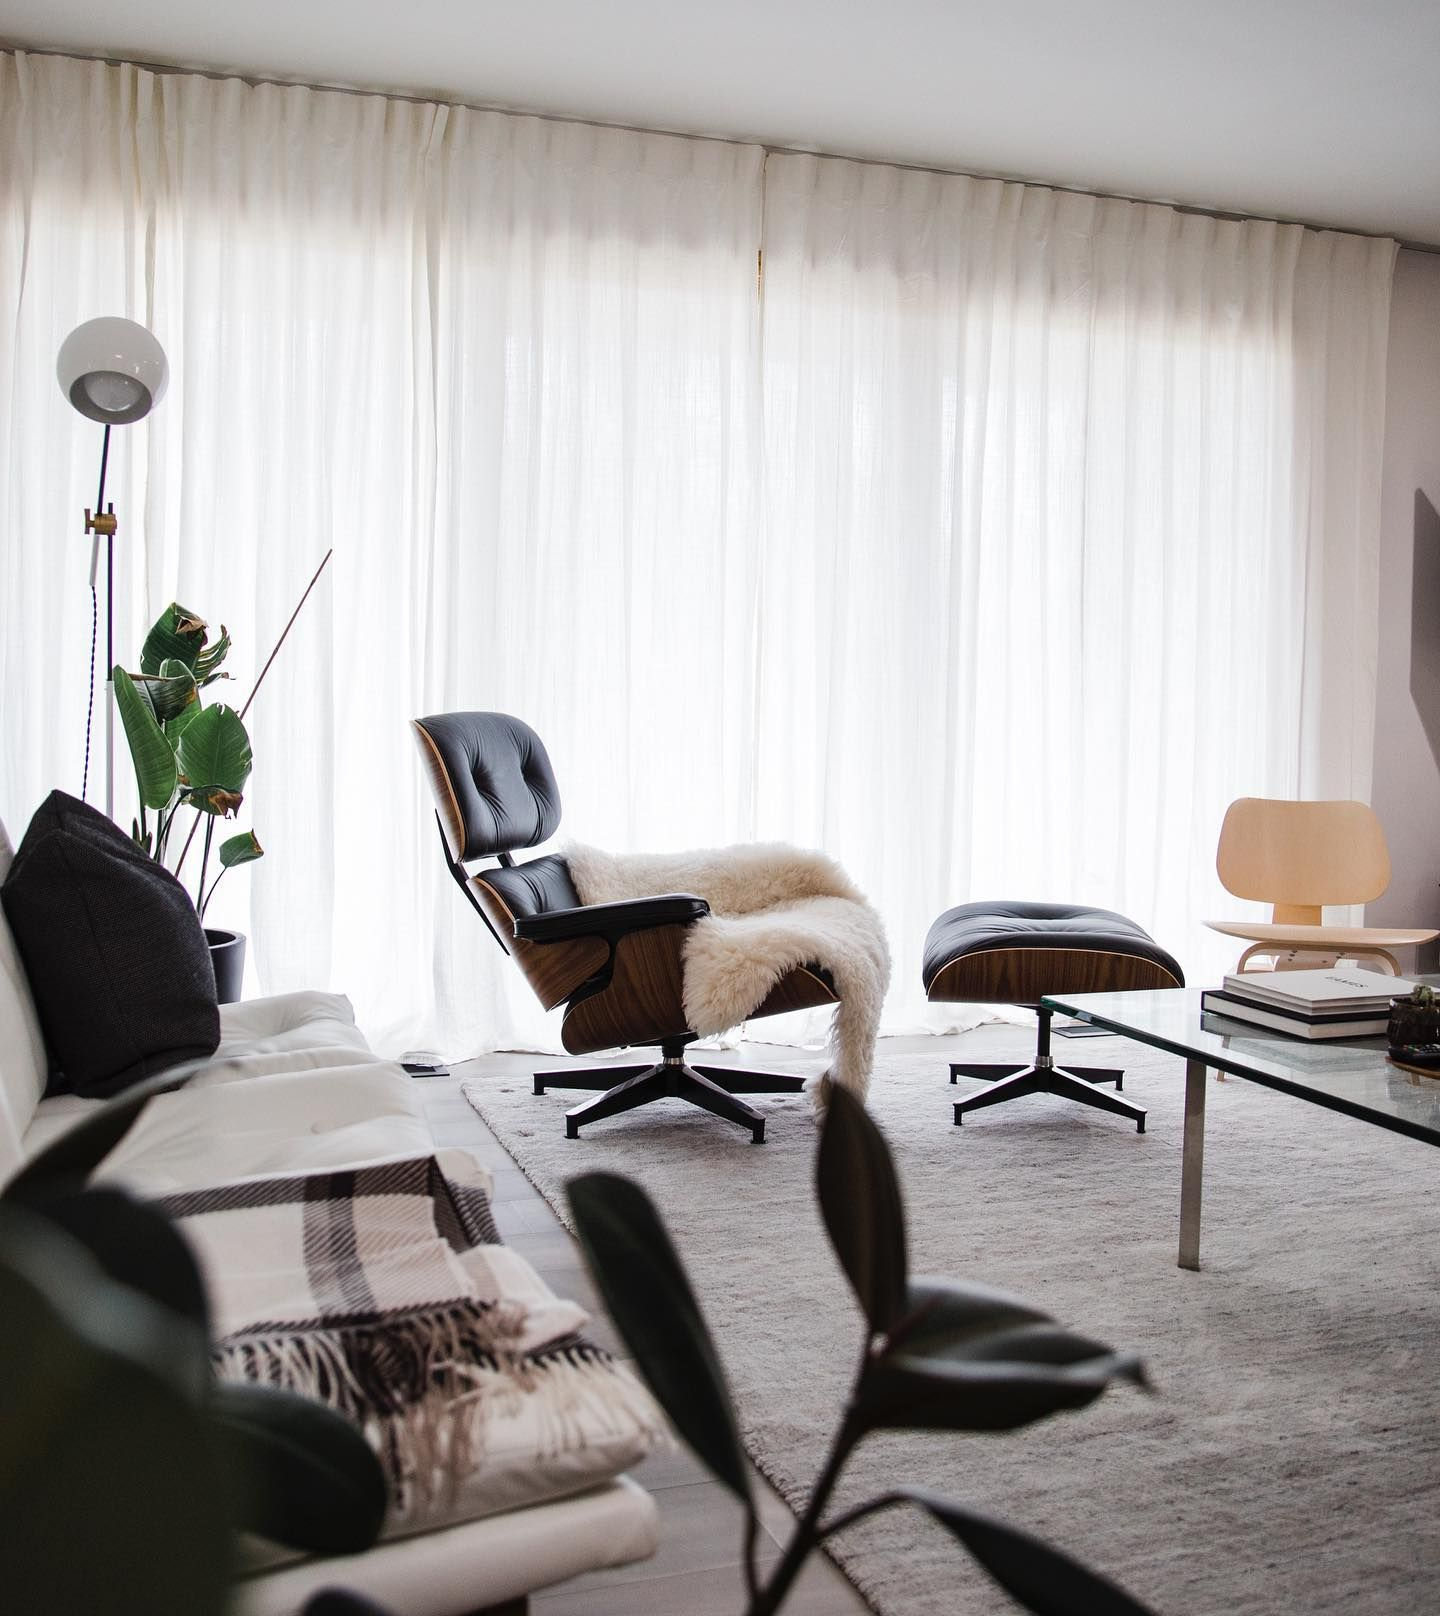 Eames Lounge Chair And Ottoman In 2020 Eames Lounge Chair Chair And Ottoman Lounge Chair